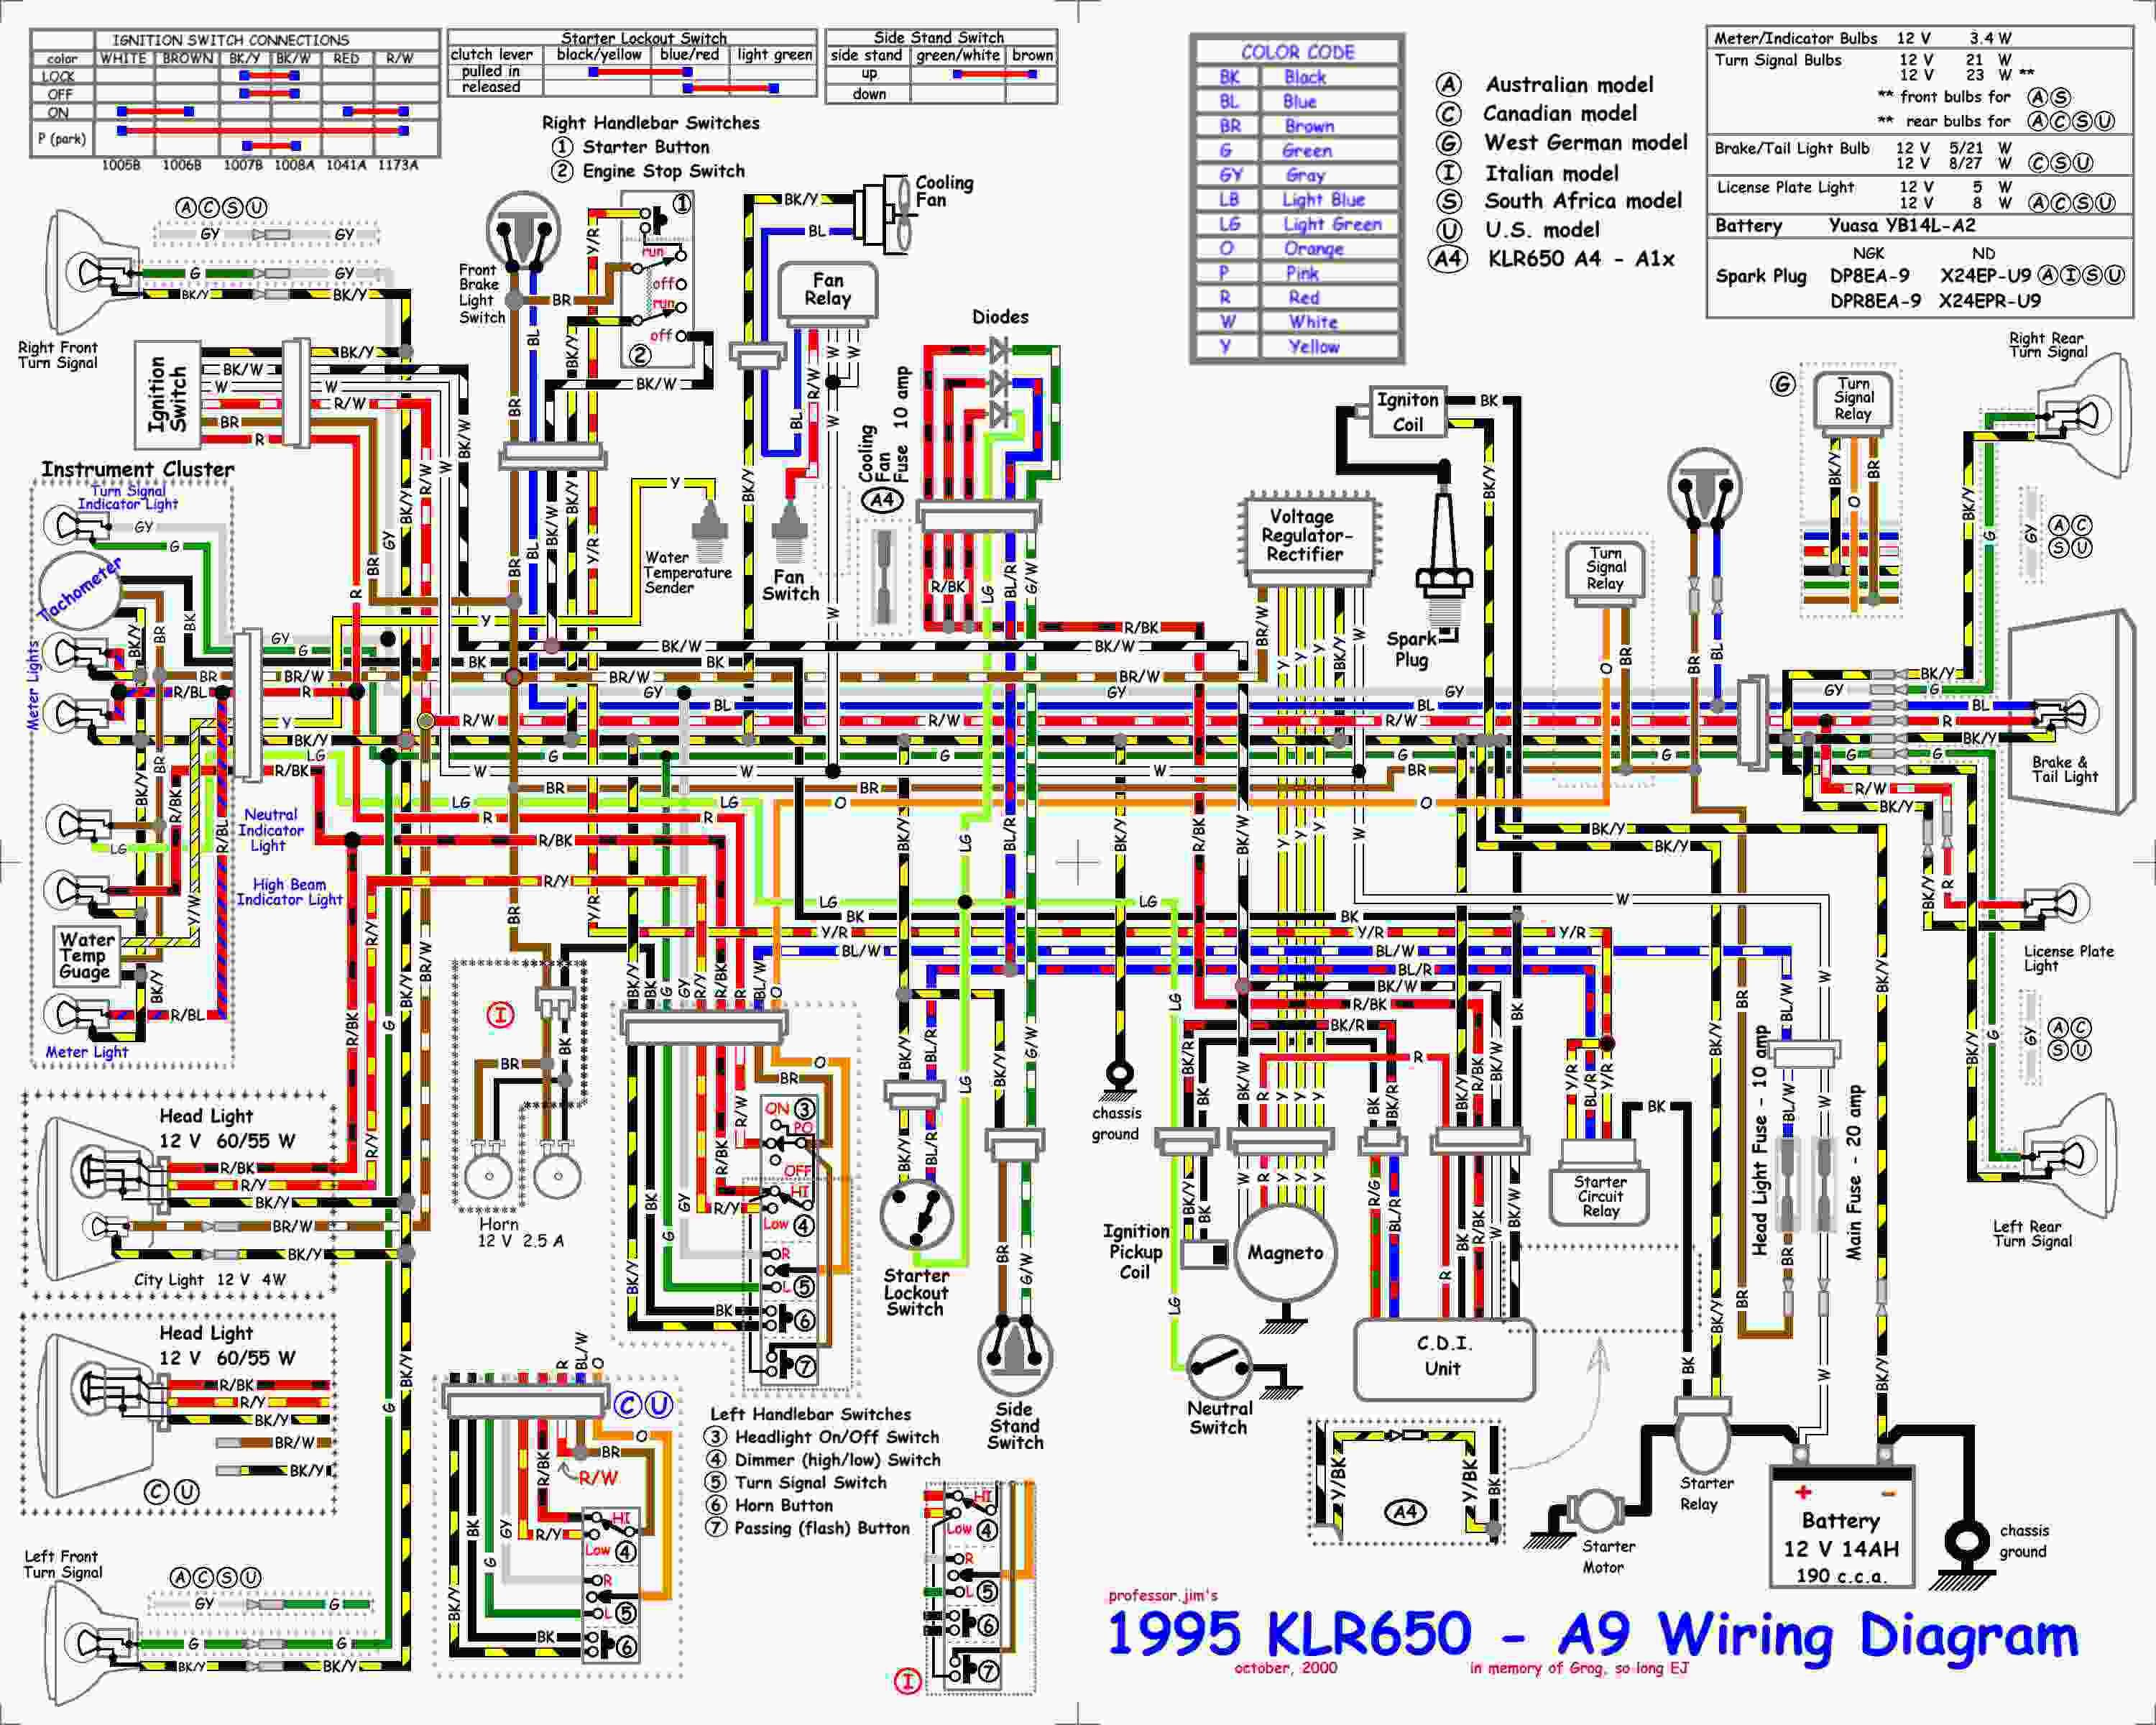 hight resolution of image result for cucv wiring diagram automotive electrical 98 chevy wiring schematics